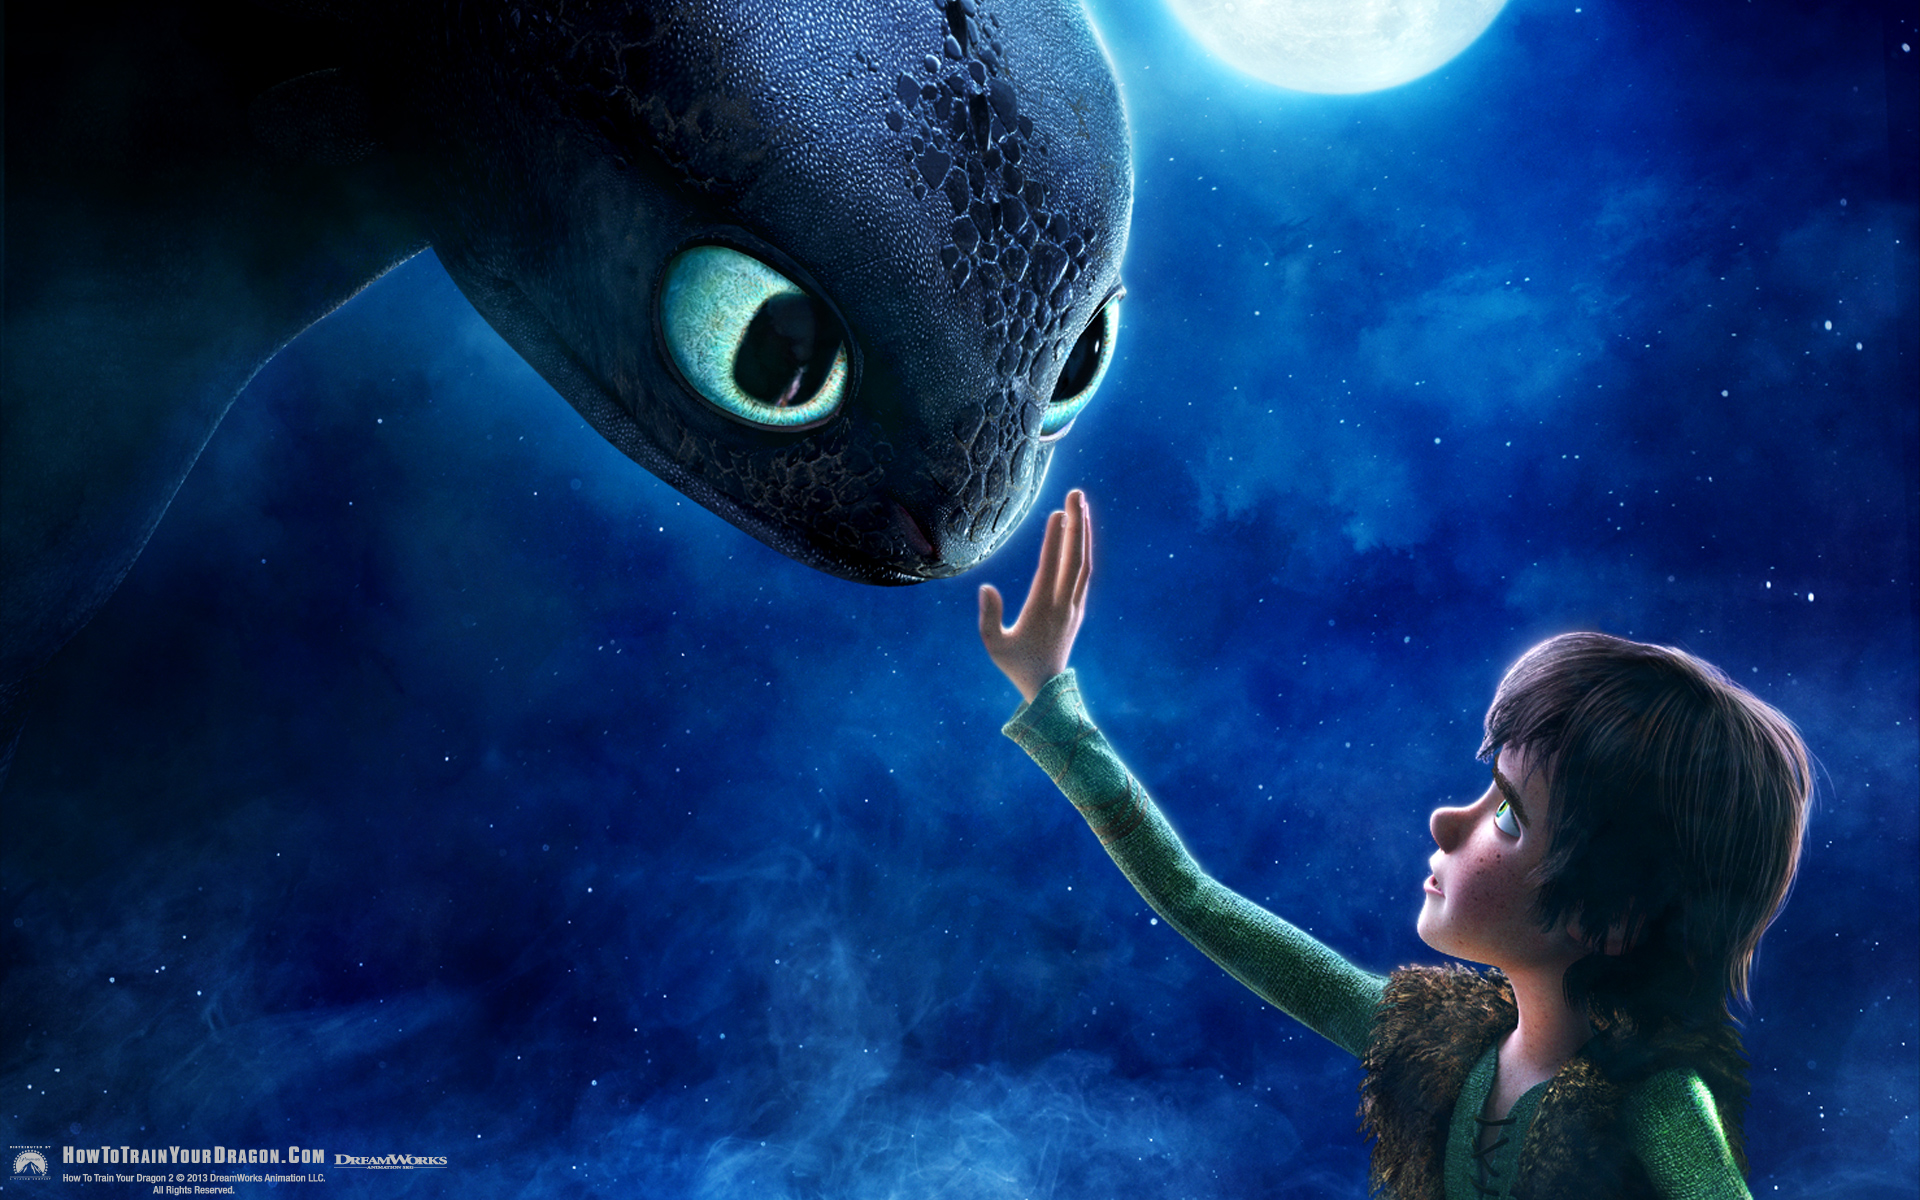 how to train your dragon desktop wallpaper background iphone wallpaper    How To Train Your Dragon 2 Wallpaper Toothless